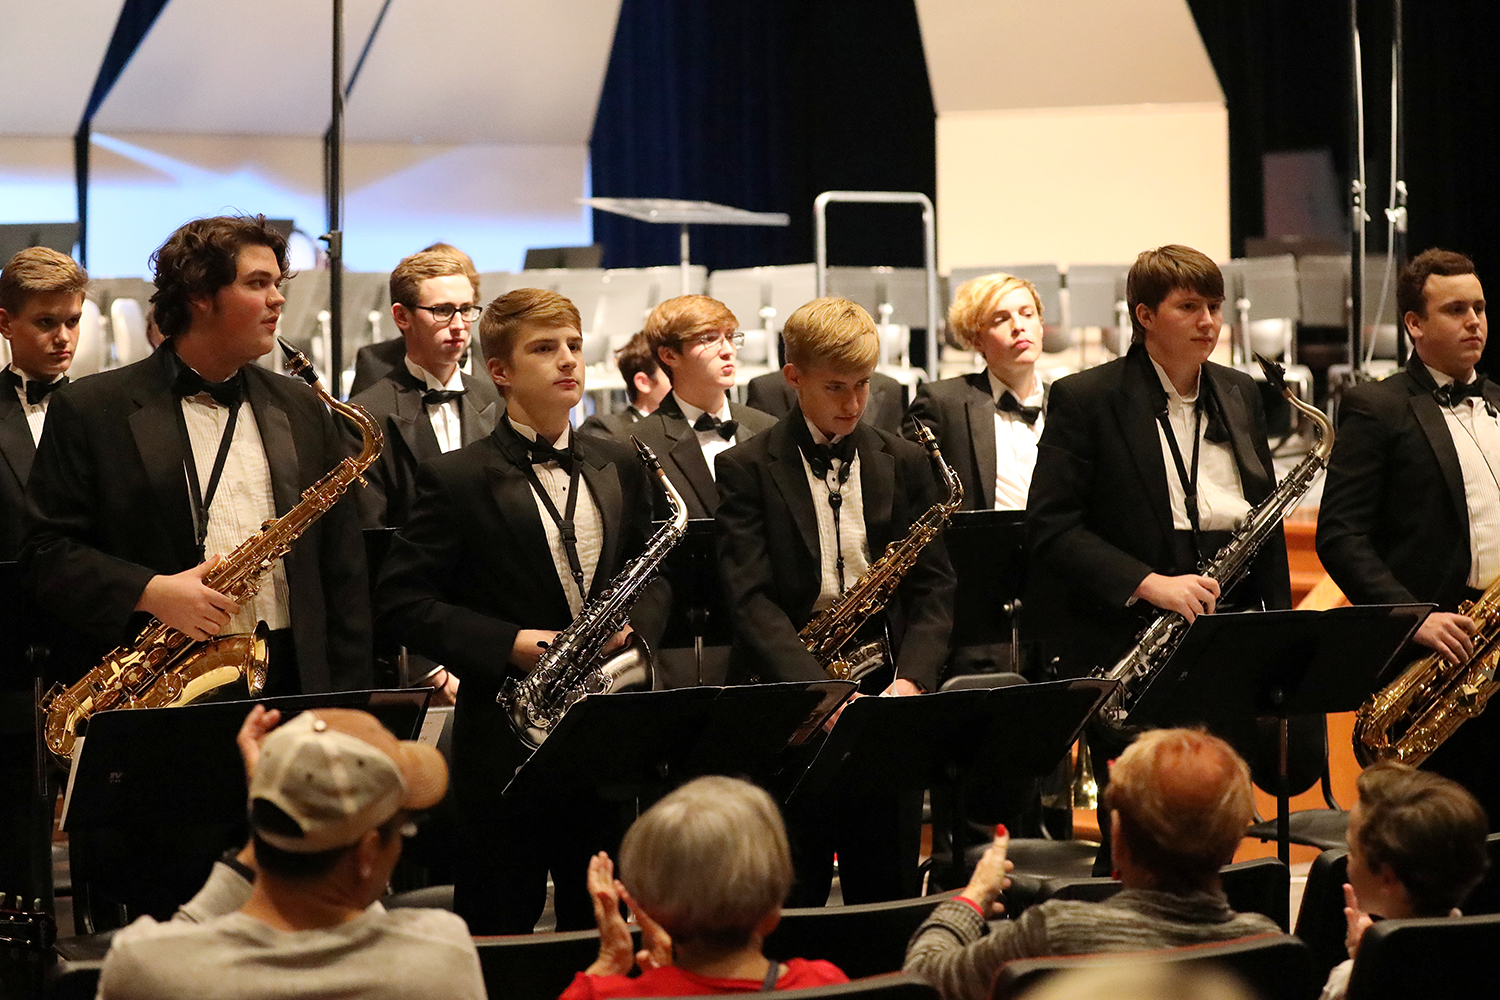 For the May 6 jazz band concert, saxophonist Sal Lozano and the Texas Instruments Jazz band will join students on stage. Last year's concert with the TI Jazz Band featured  Delfeayo Marsalis.